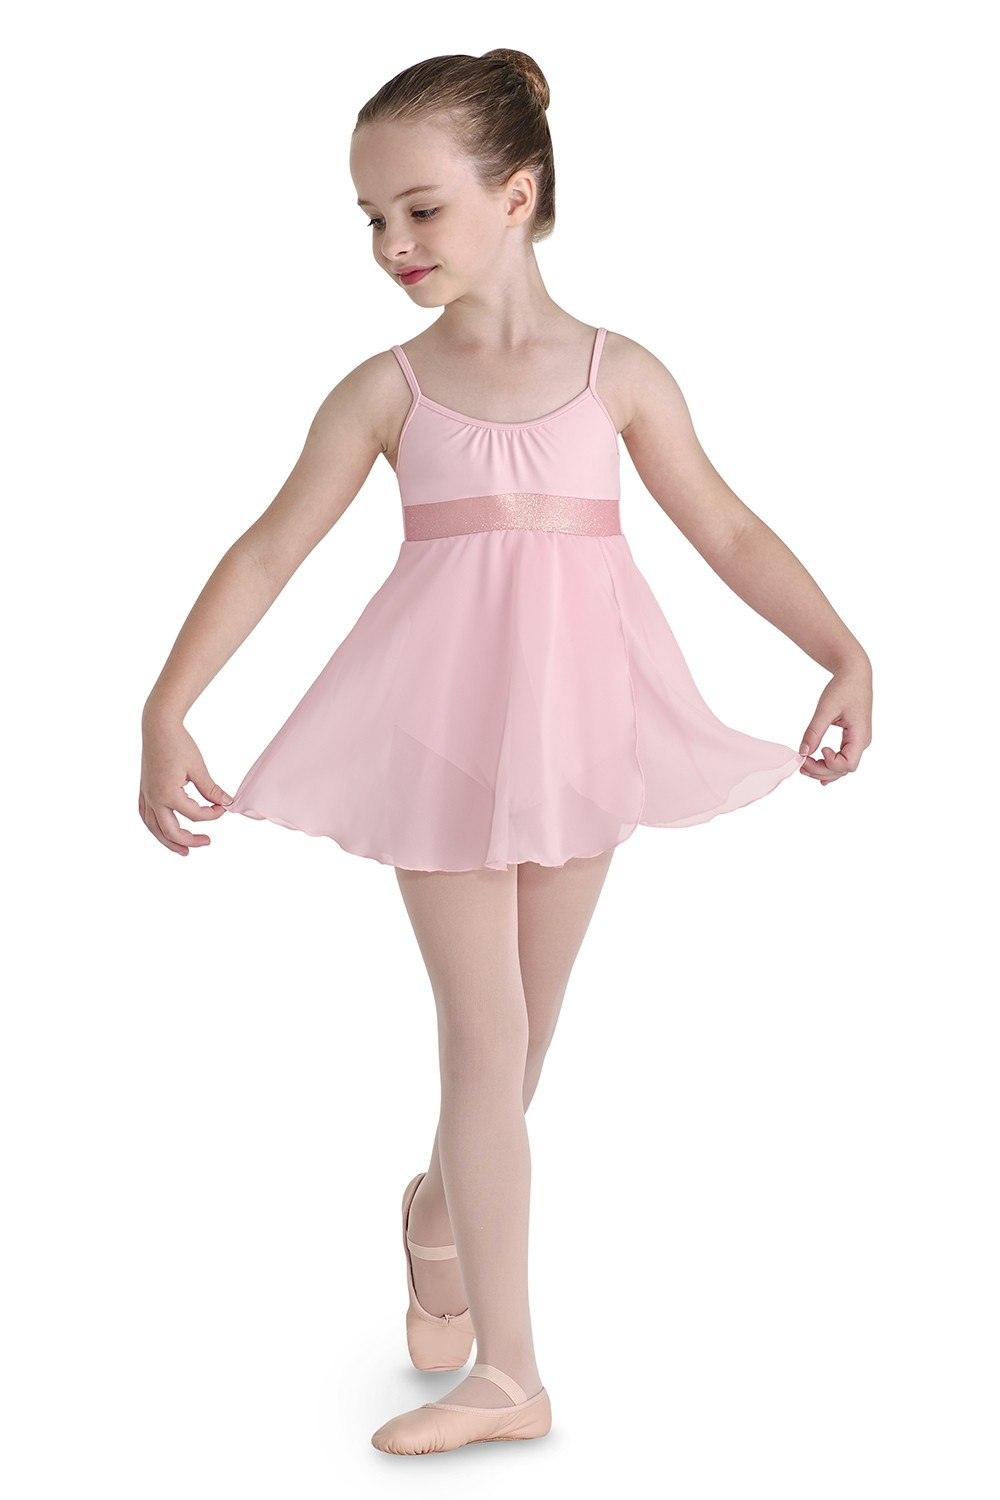 Glitterdust Dress Cami Leo Children's Dance Leotards